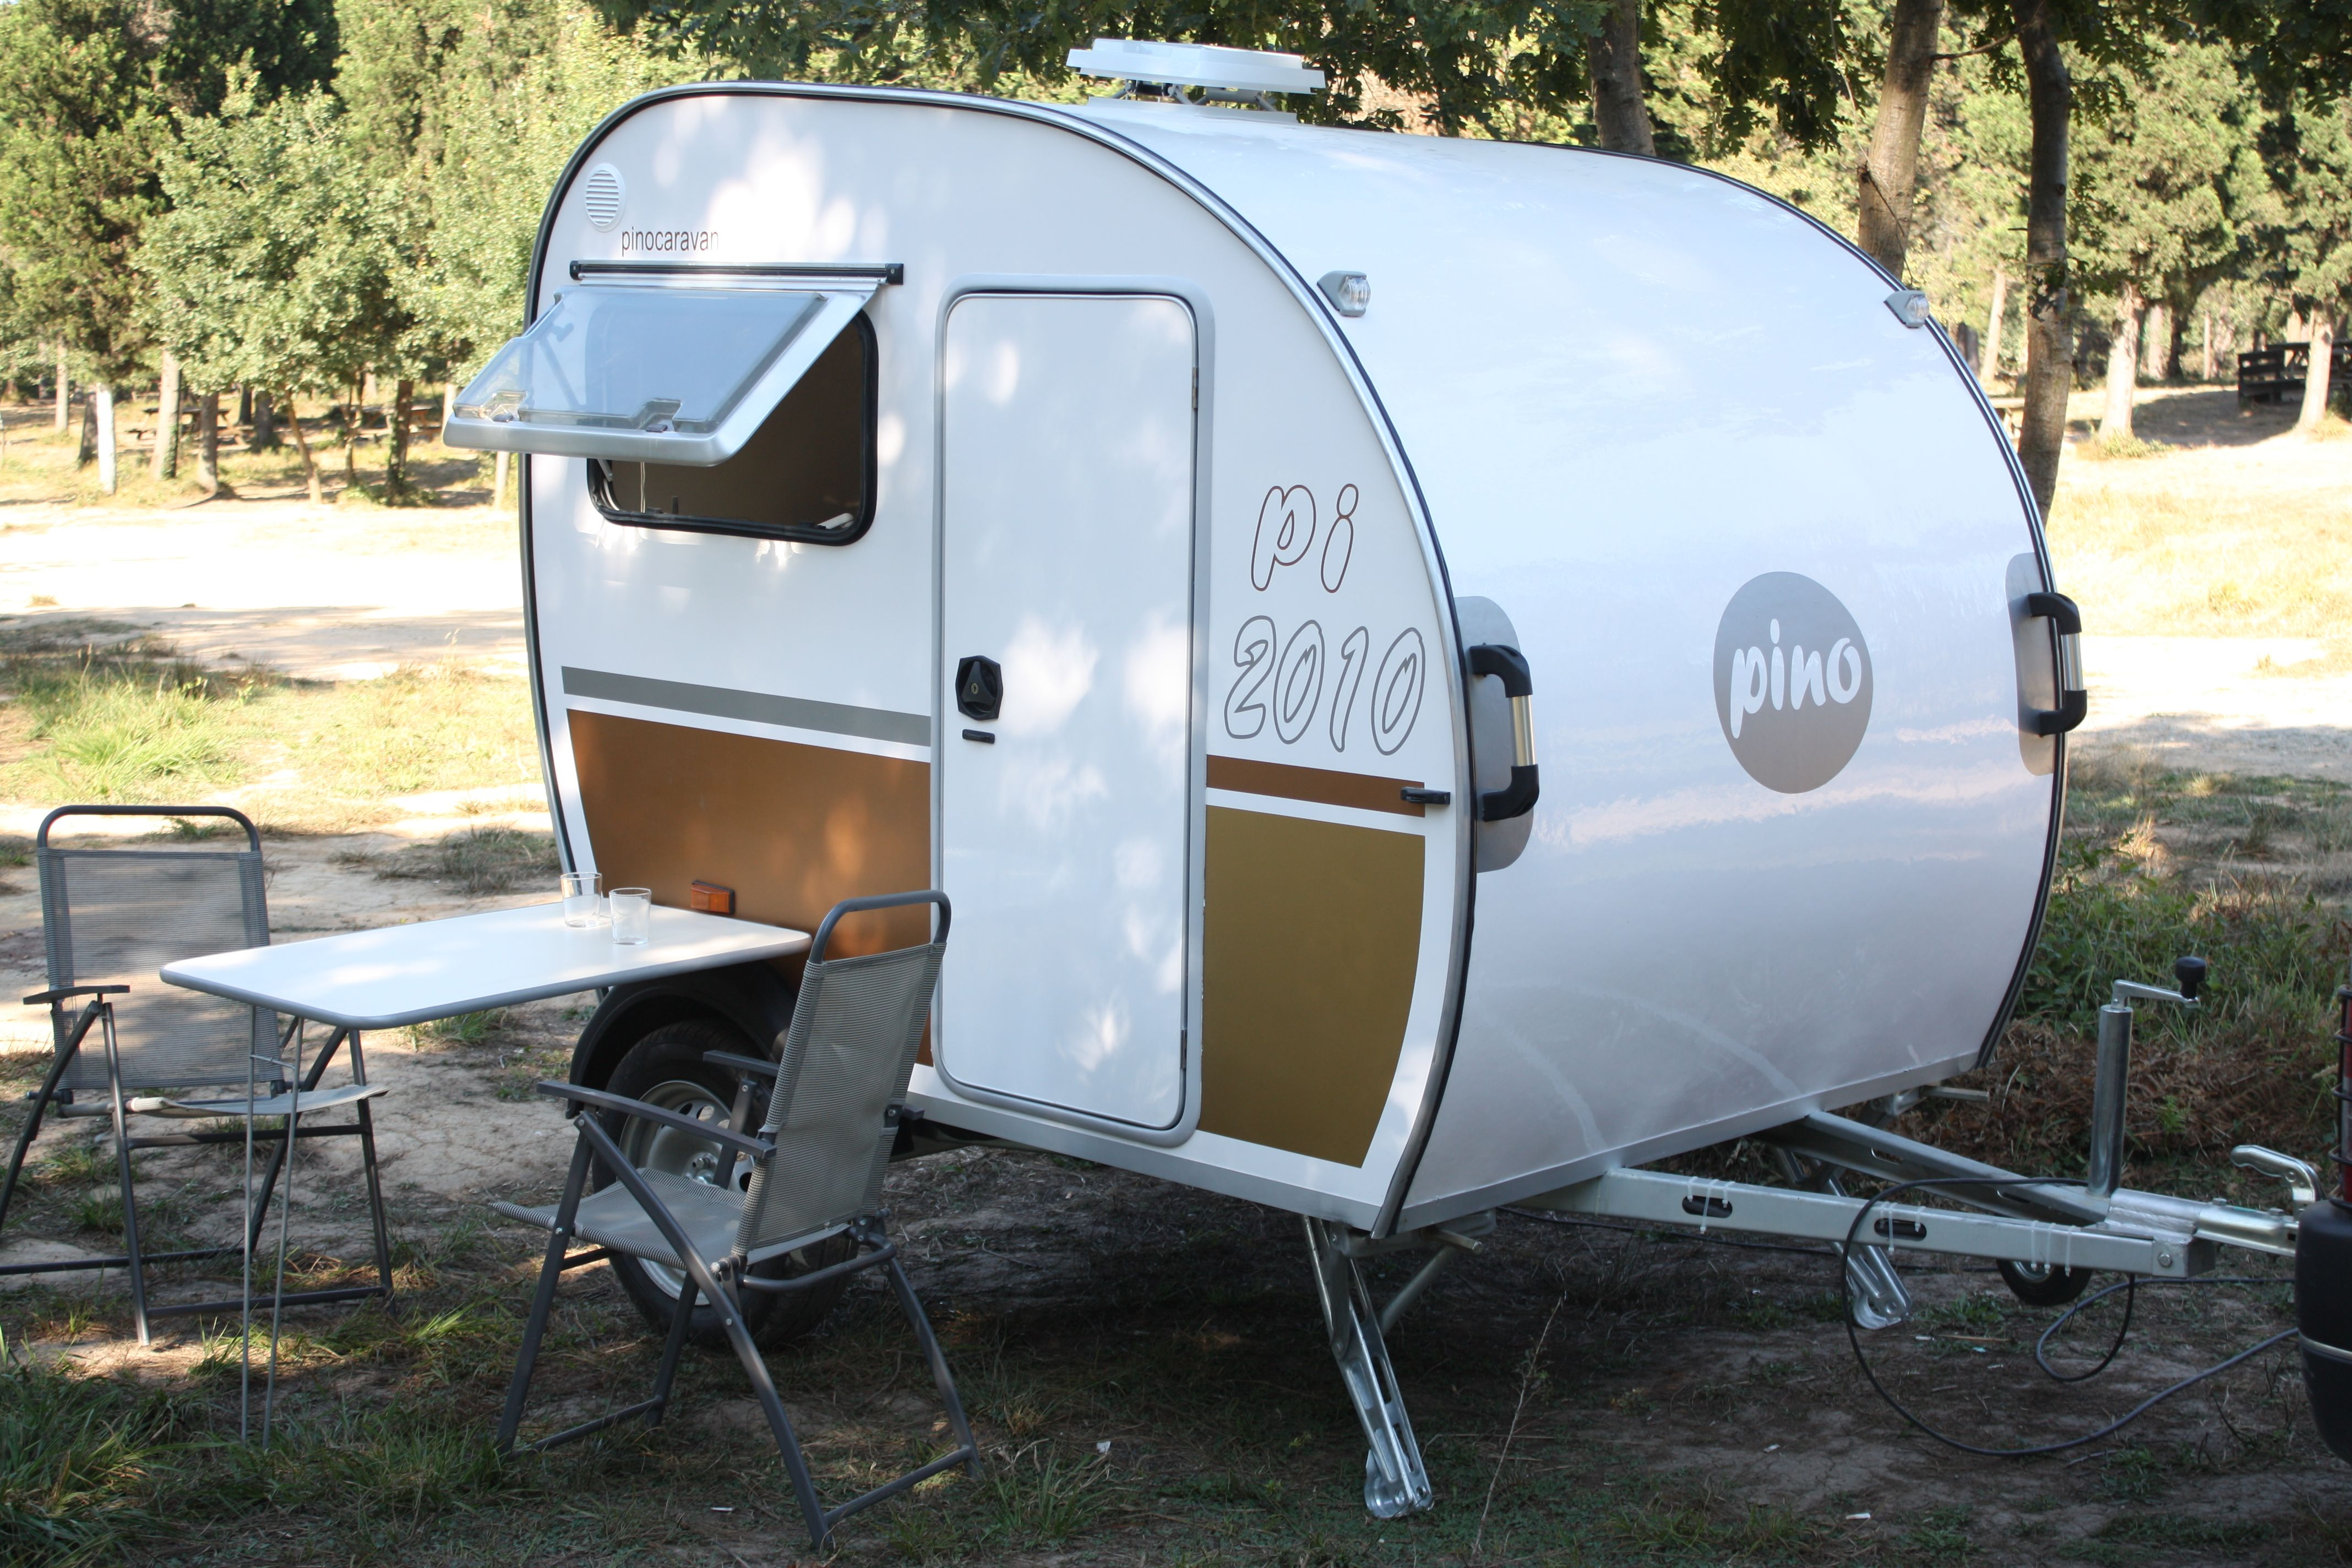 www.pinocaravans.co.uk Special design, pod caravans, mini-trailers https://www.facebook.com/pinocaravans?fref=ts